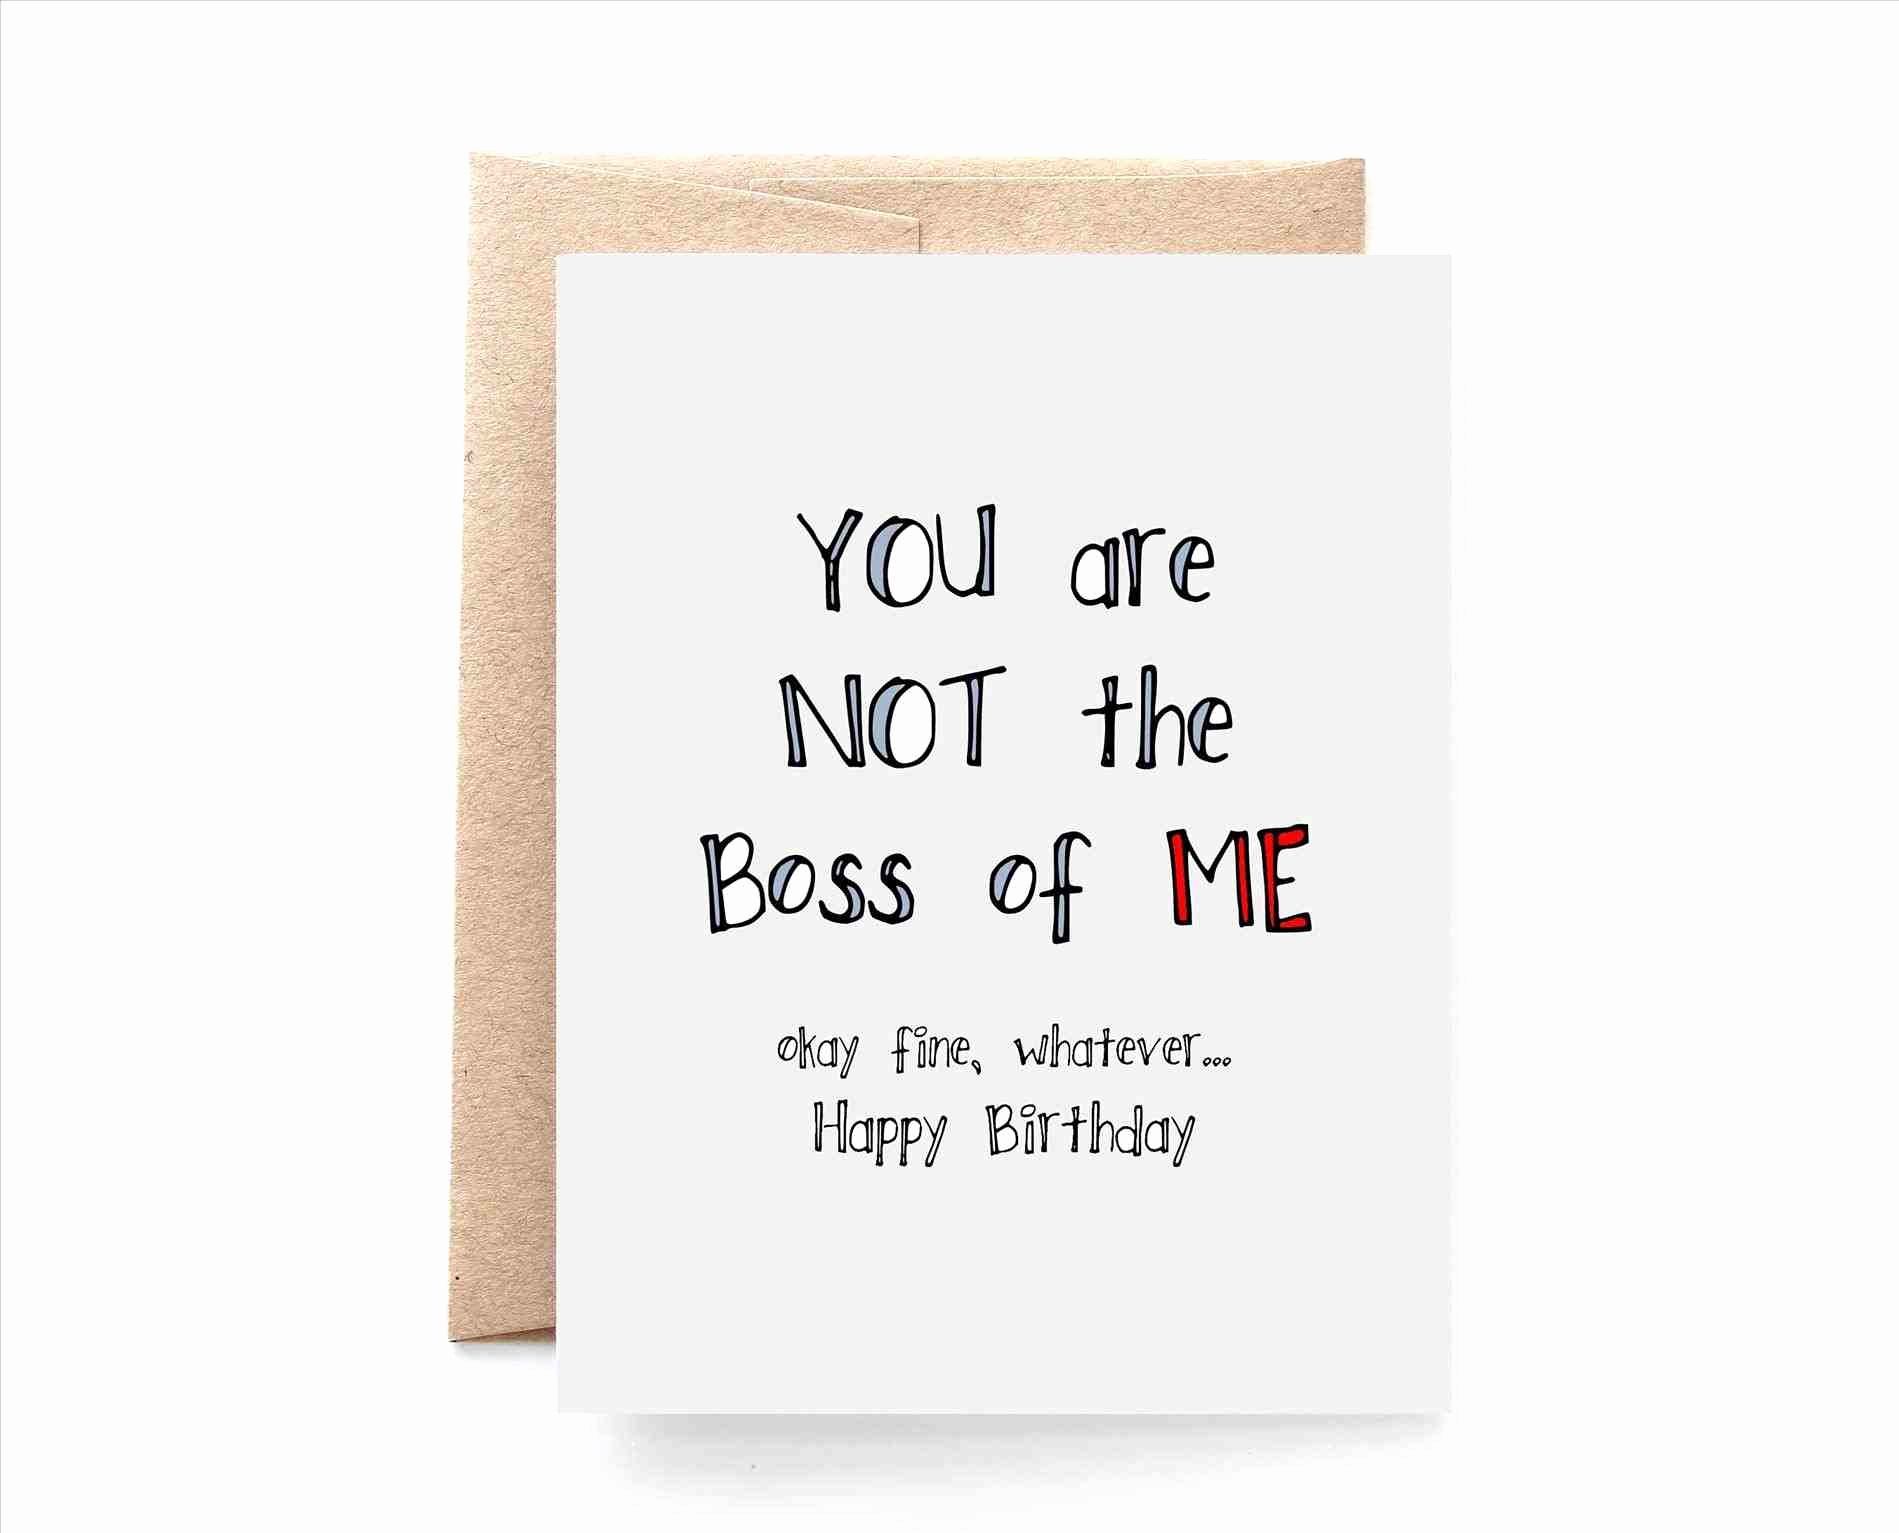 birthday card for boss funny ; birthday-card-for-boss-funny-inspirational-funny-boss-birthday-card-image-collections-birthday-cards-design-of-birthday-card-for-boss-funny